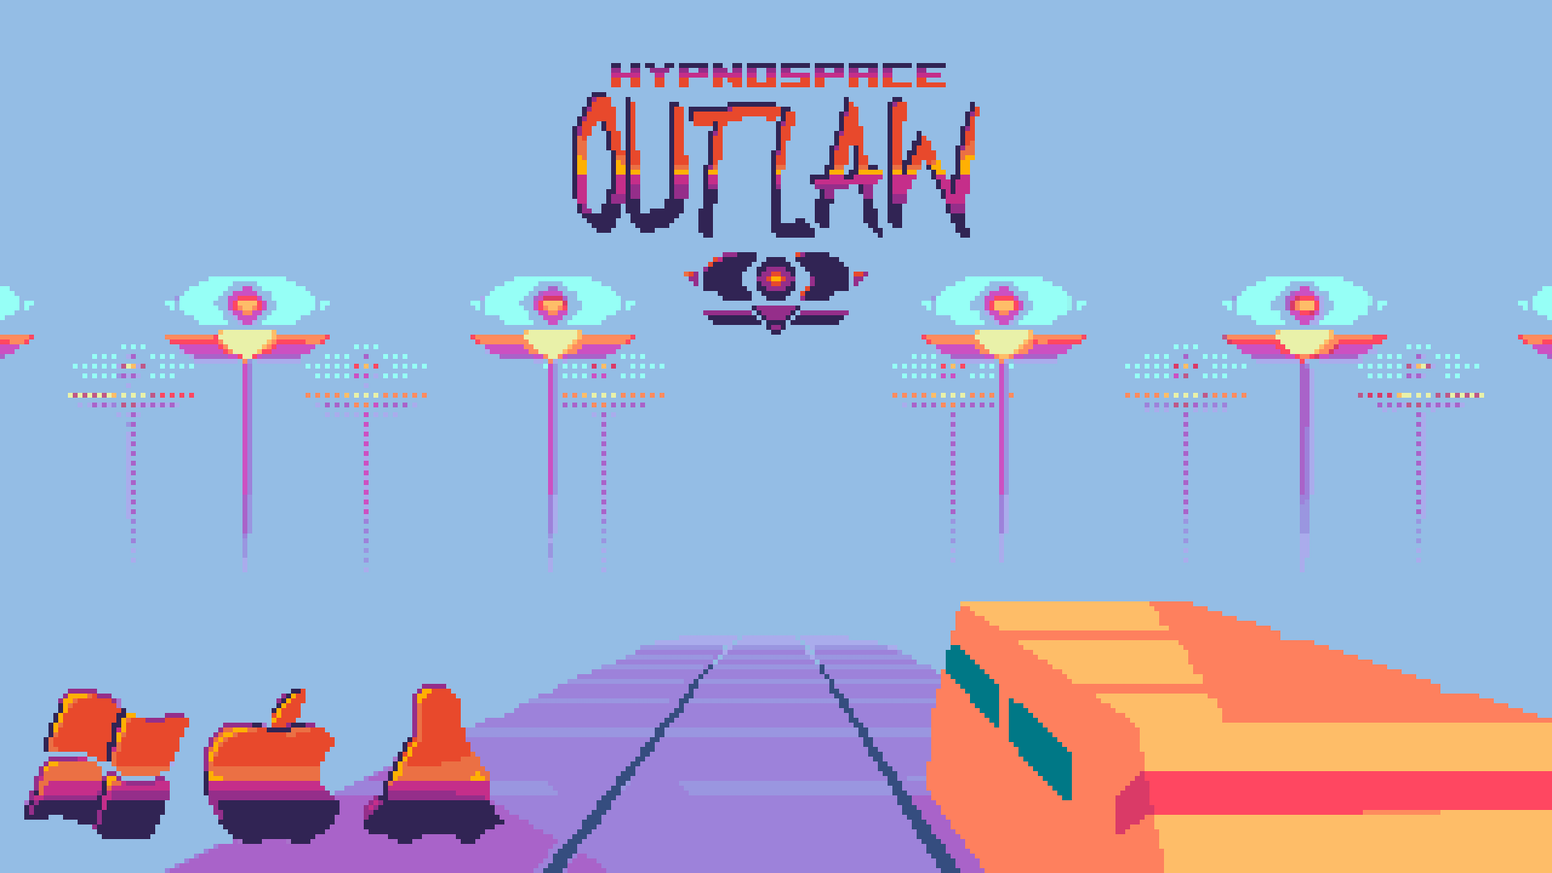 Police the internet of the future via an arcane operating system. Pursue outlaws on the Hypnospace Highway. Feed adorable virtual pets.